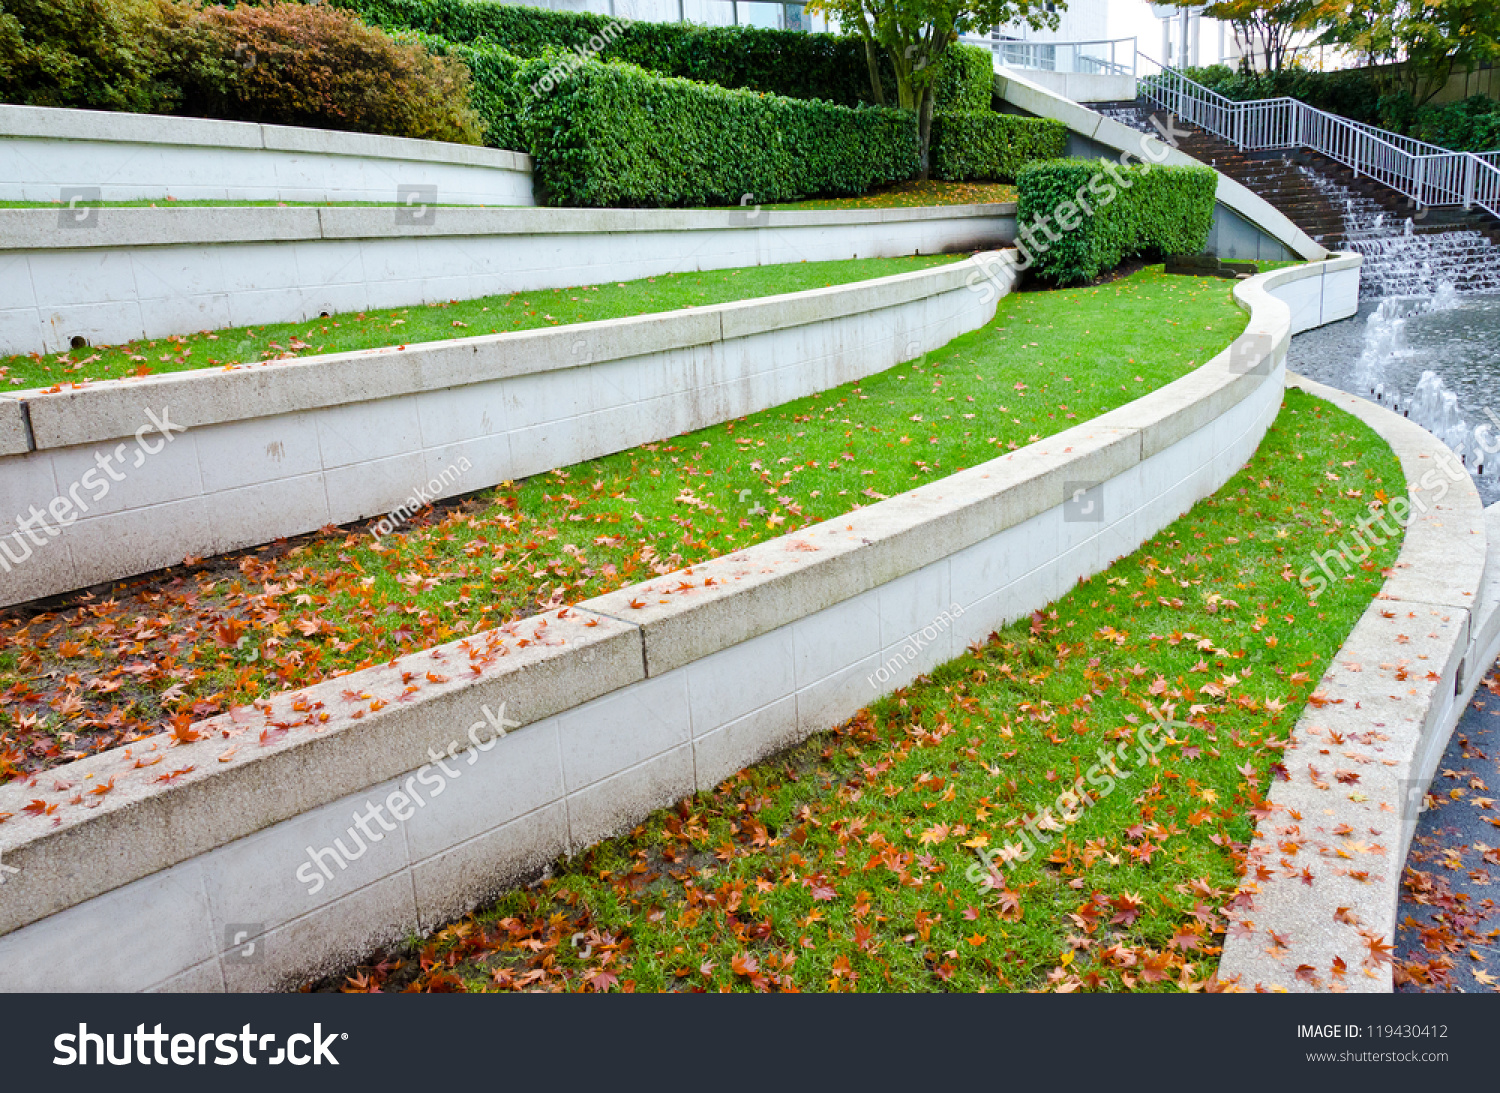 Leveled terraces with grass and fountains in a city plaza for Landscape architecture canada